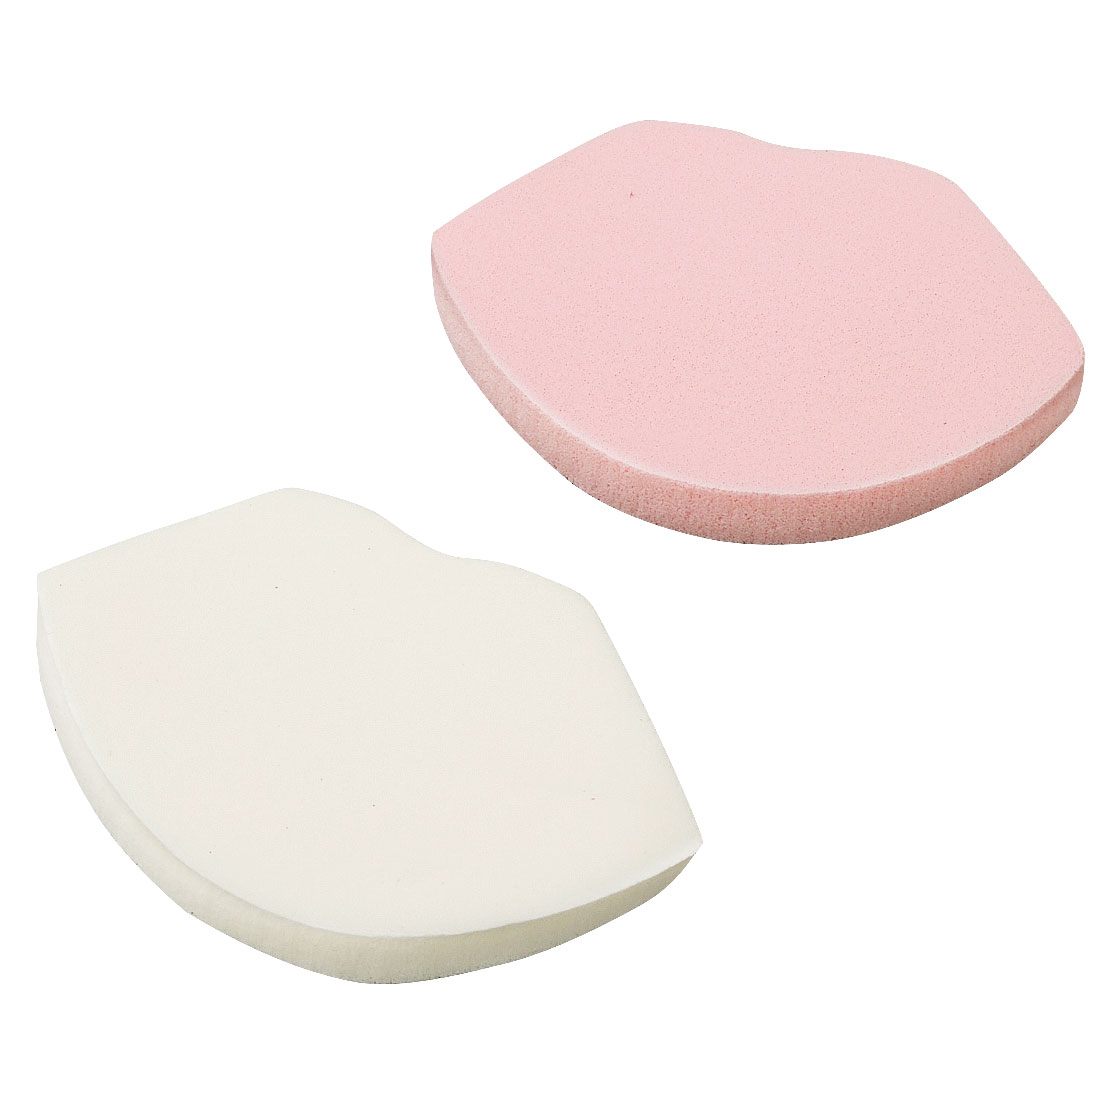 Cute Pair Sponge Lip Design Make Up Face Powder Puff